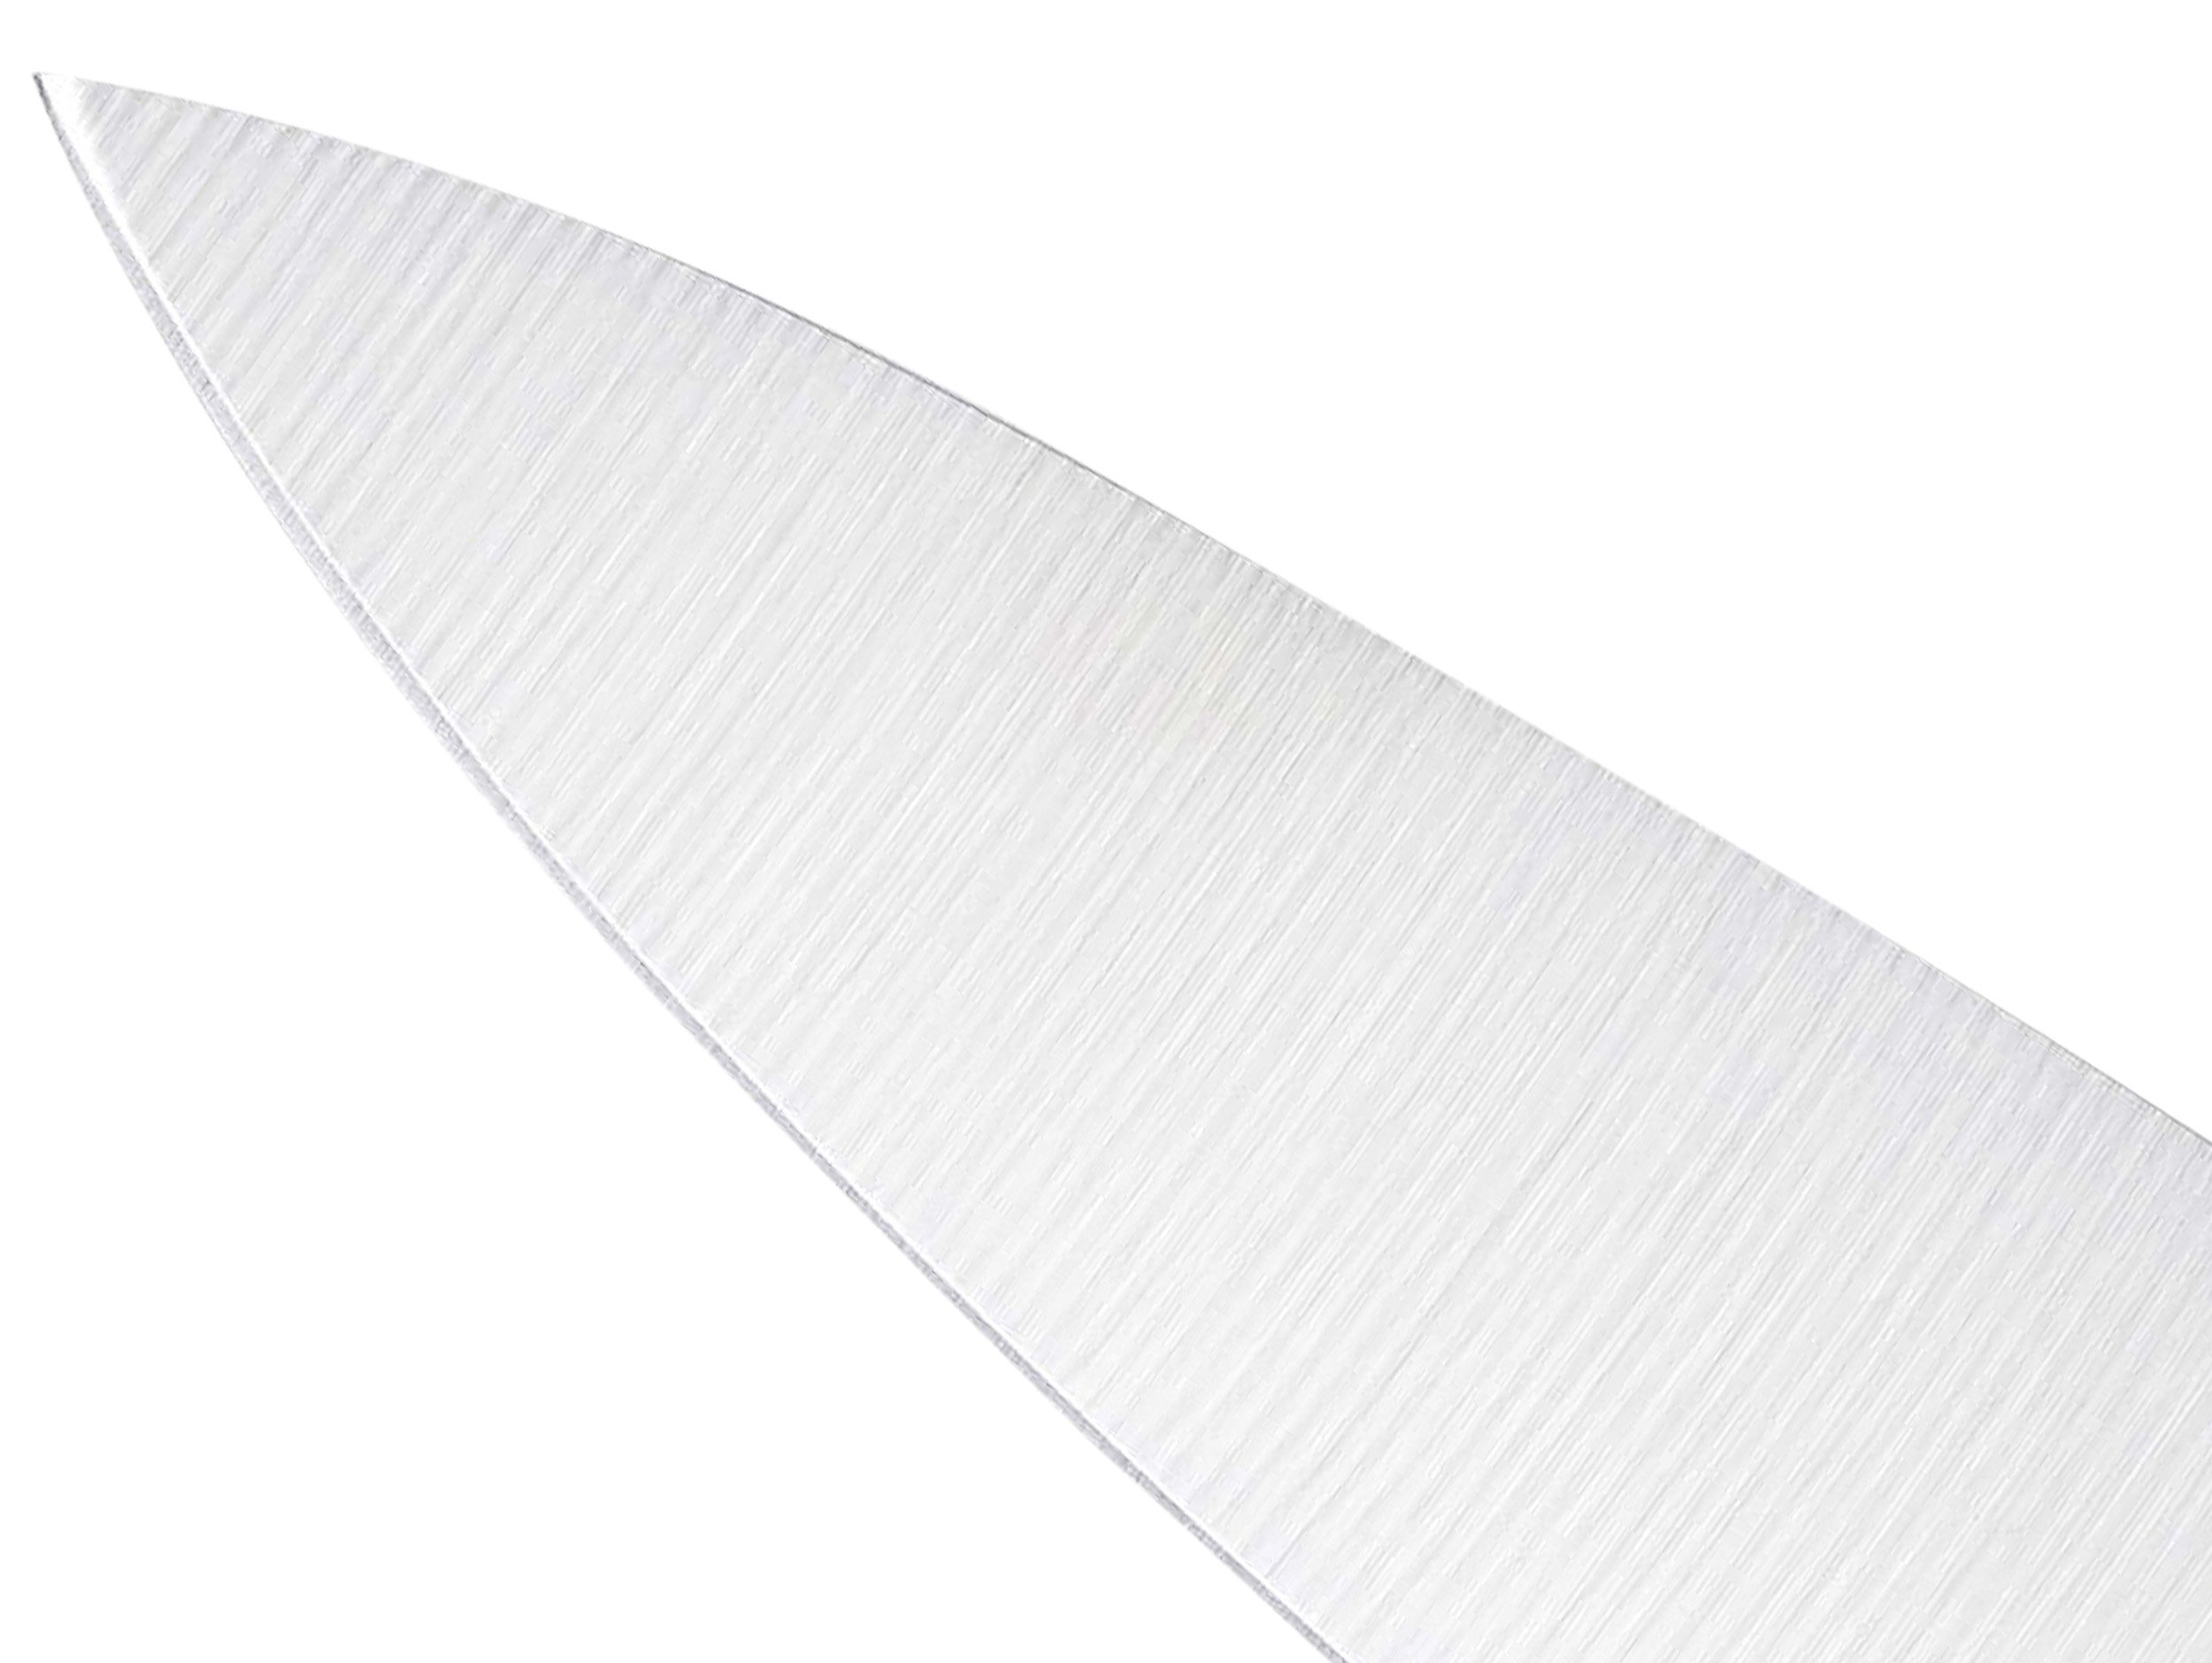 Mercer Culinary M22608WBH Millennia 8-Inch Chef's Knife, White 2 Ergonomic handle - a combination of Santoprene for comfort and polypropylene for durability Textured finger points provide slip resistance, grip, and safety Protective finger guard